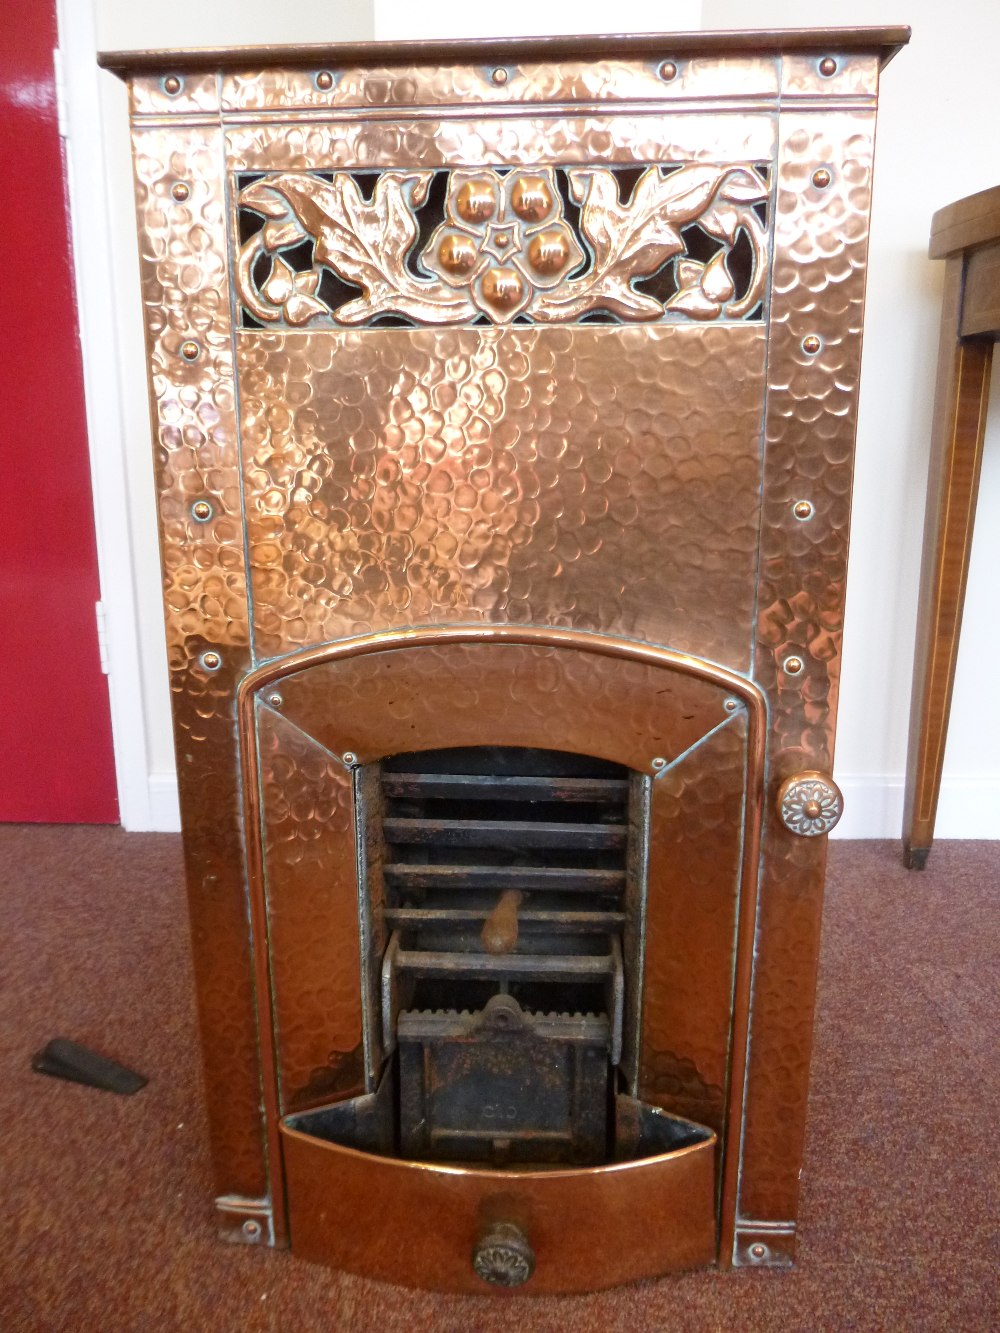 Copper pither (stove) with Art Nouveau style decoration, believed ...